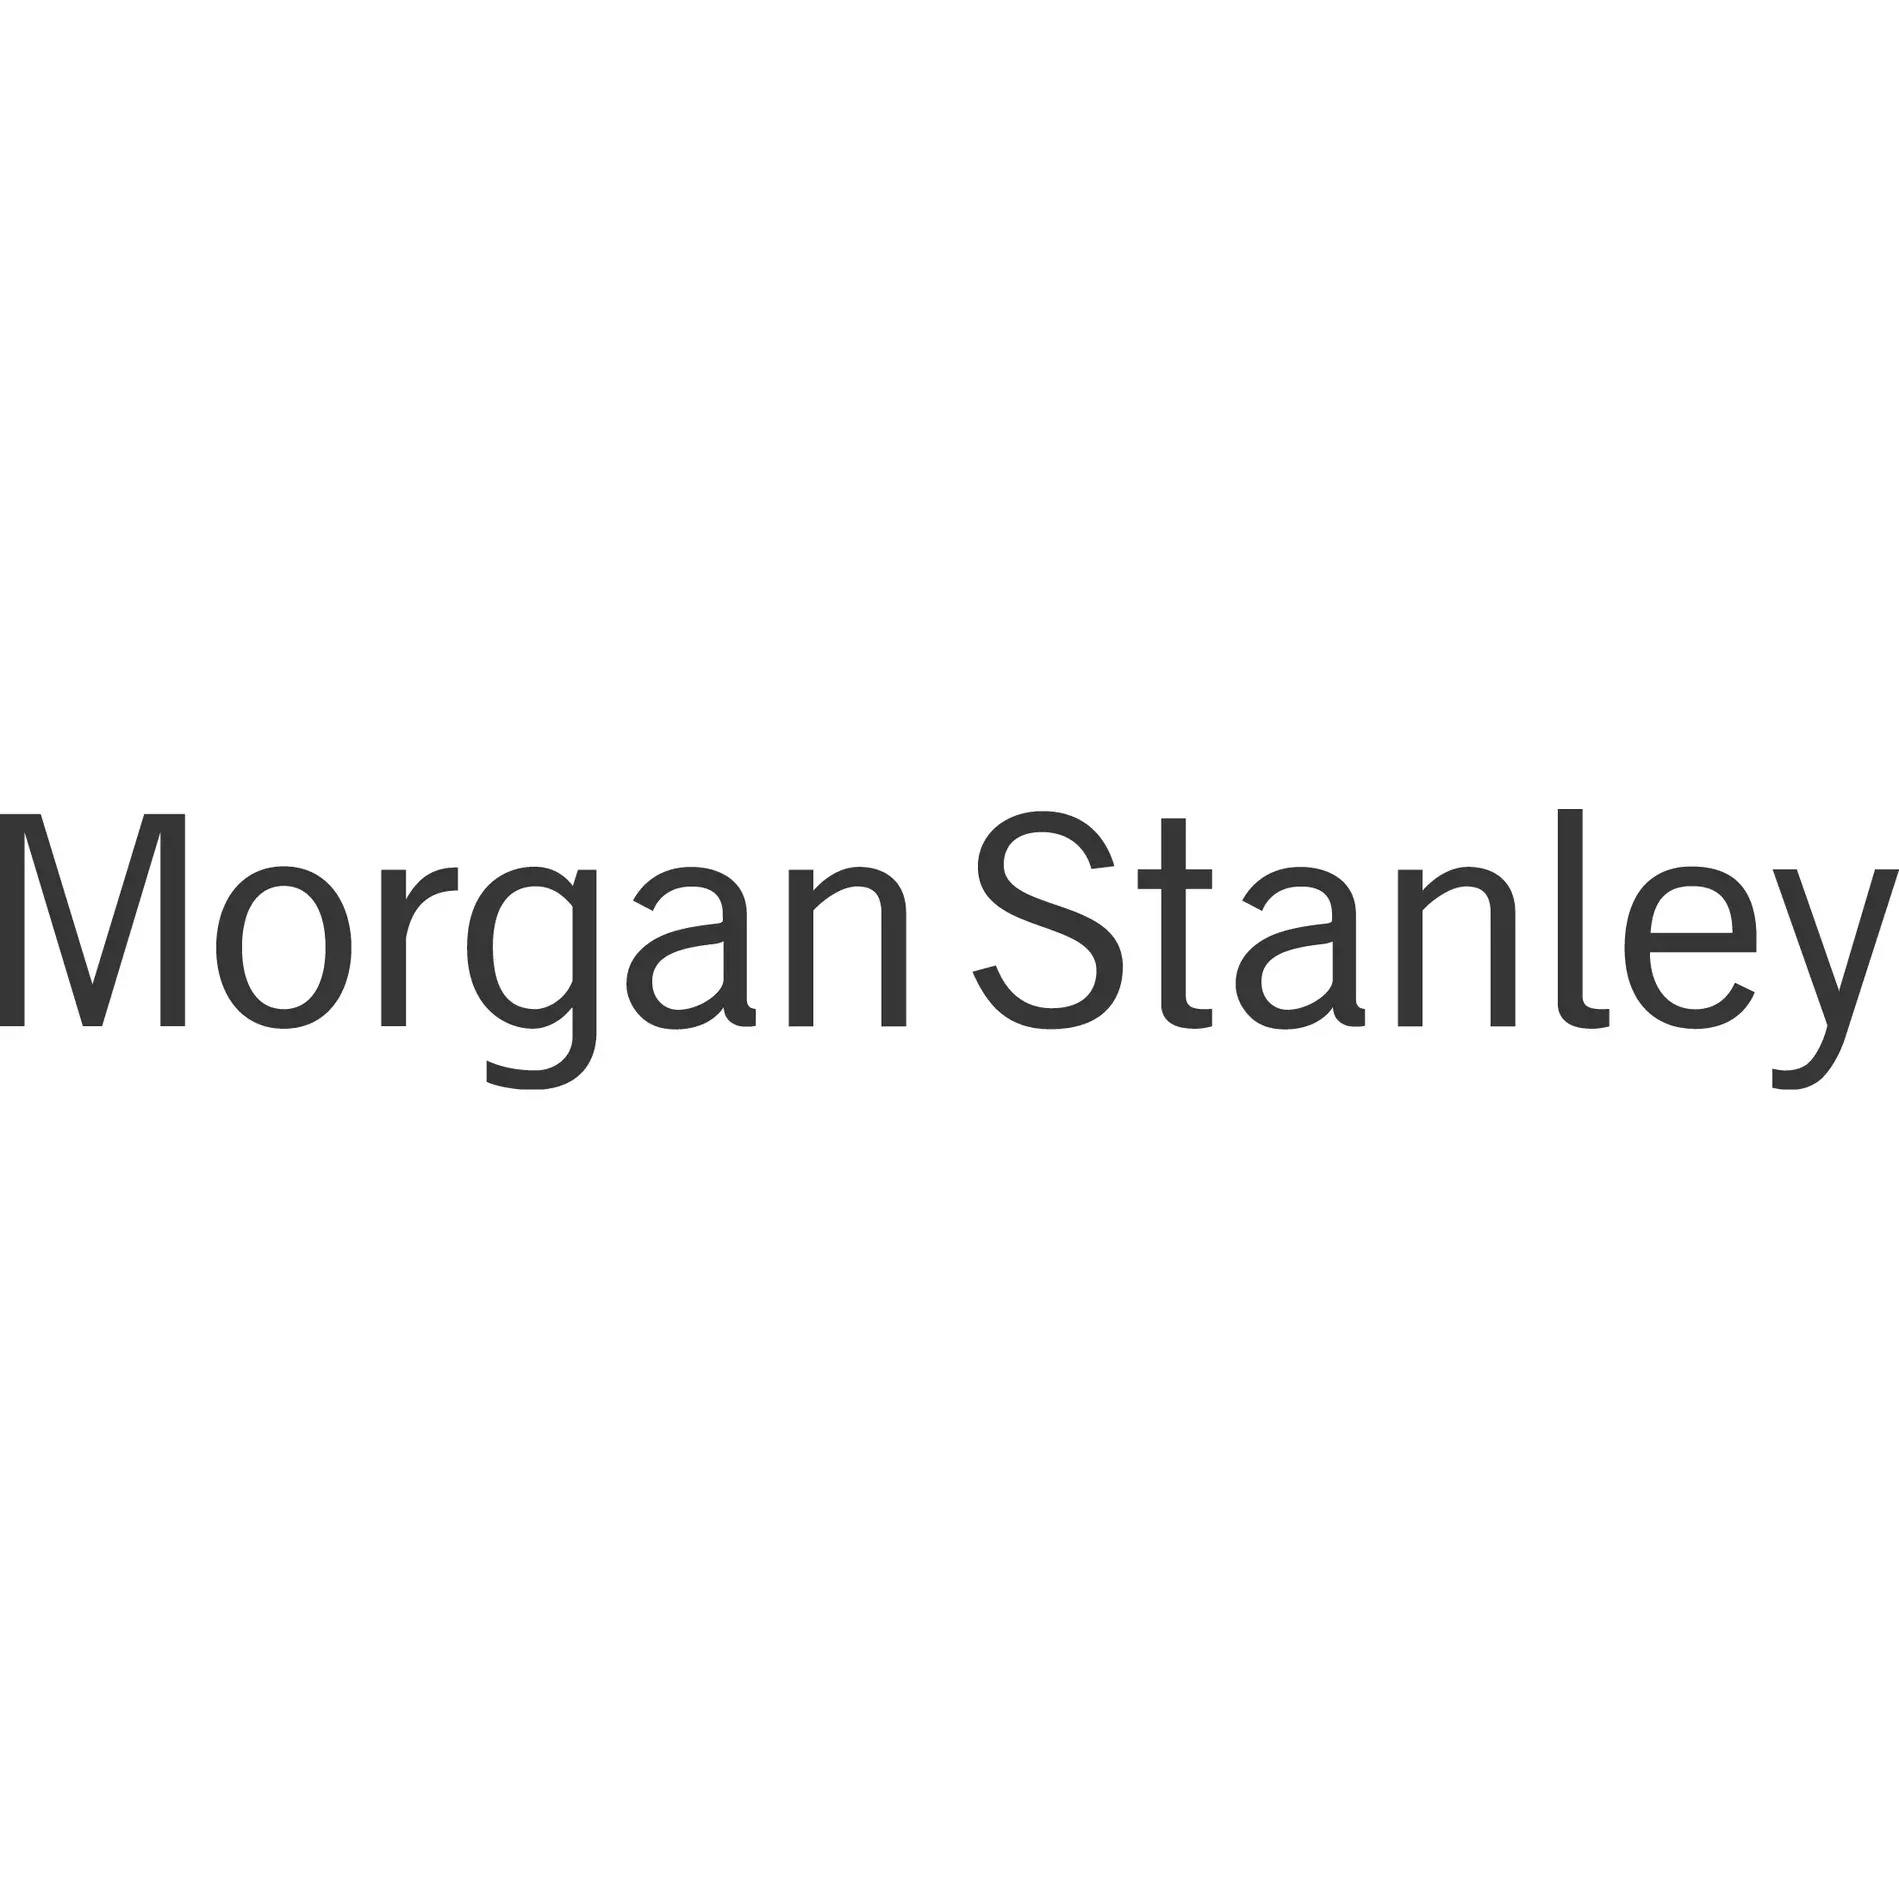 Jonathan K Spafford - Morgan Stanley | Financial Advisor in Indianapolis,Indiana